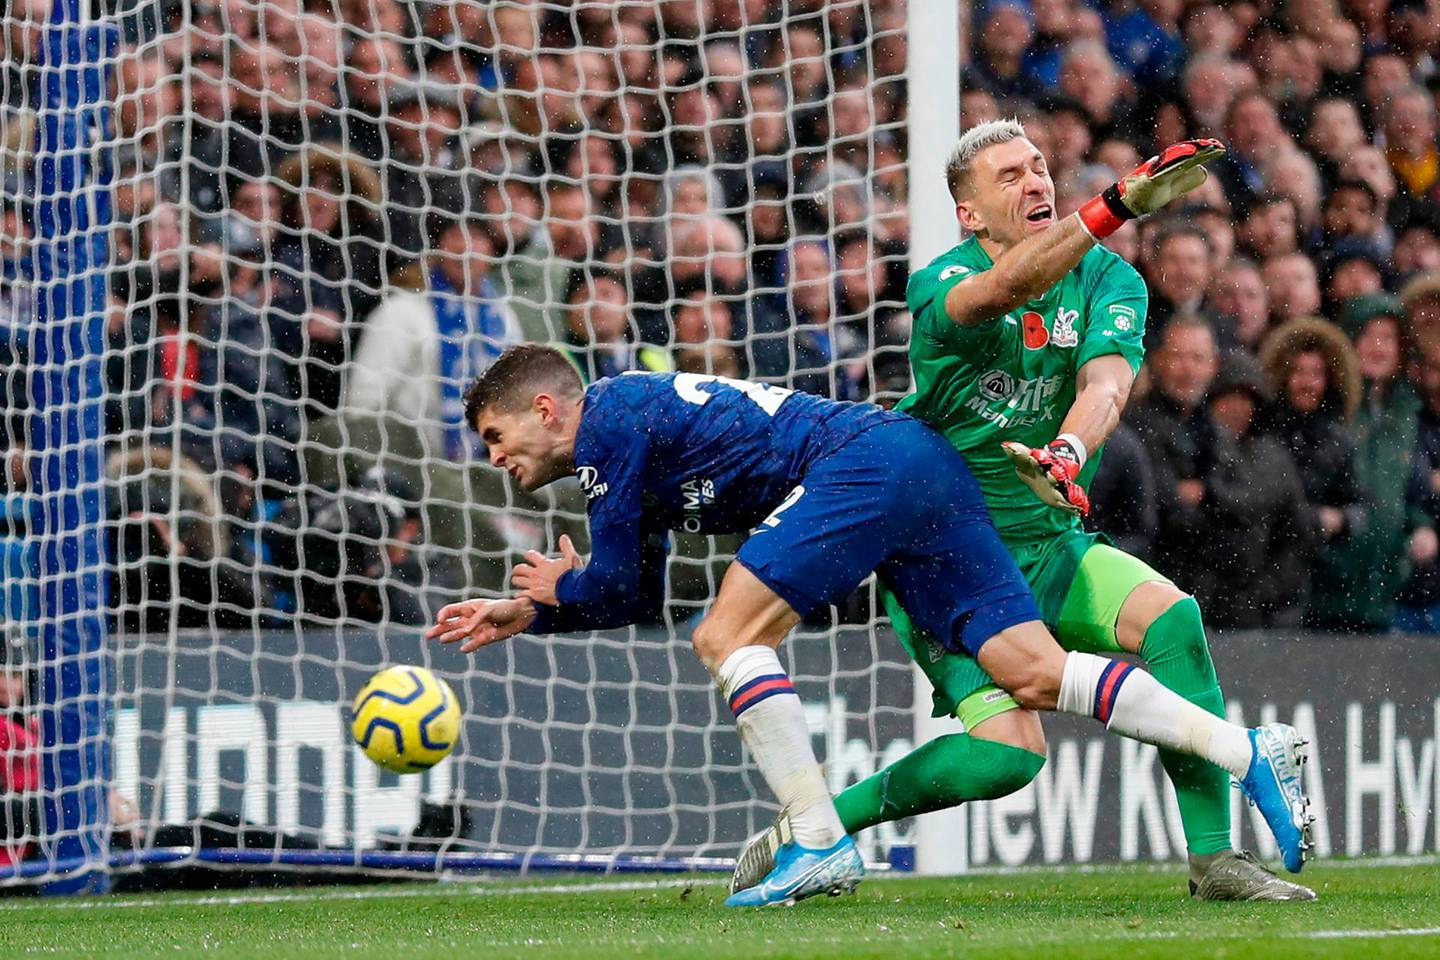 Chelsea's US midfielder Christian Pulisic scores his team's second goal during the English Premier League football match between Chelsea and Crystal Palace at Stamford Bridge in London on November 9, 2019. RESTRICTED TO EDITORIAL USE. No use with unauthorized audio, video, data, fixture lists, club/league logos or 'live' services. Online in-match use limited to 120 images. An additional 40 images may be used in extra time. No video emulation. Social media in-match use limited to 120 images. An additional 40 images may be used in extra time. No use in betting publications, games or single club/league/player publications.  / AFP / Adrian DENNIS / RESTRICTED TO EDITORIAL USE. No use with unauthorized audio, video, data, fixture lists, club/league logos or 'live' services. Online in-match use limited to 120 images. An additional 40 images may be used in extra time. No video emulation. Social media in-match use limited to 120 images. An additional 40 images may be used in extra time. No use in betting publications, games or single club/league/player publications.